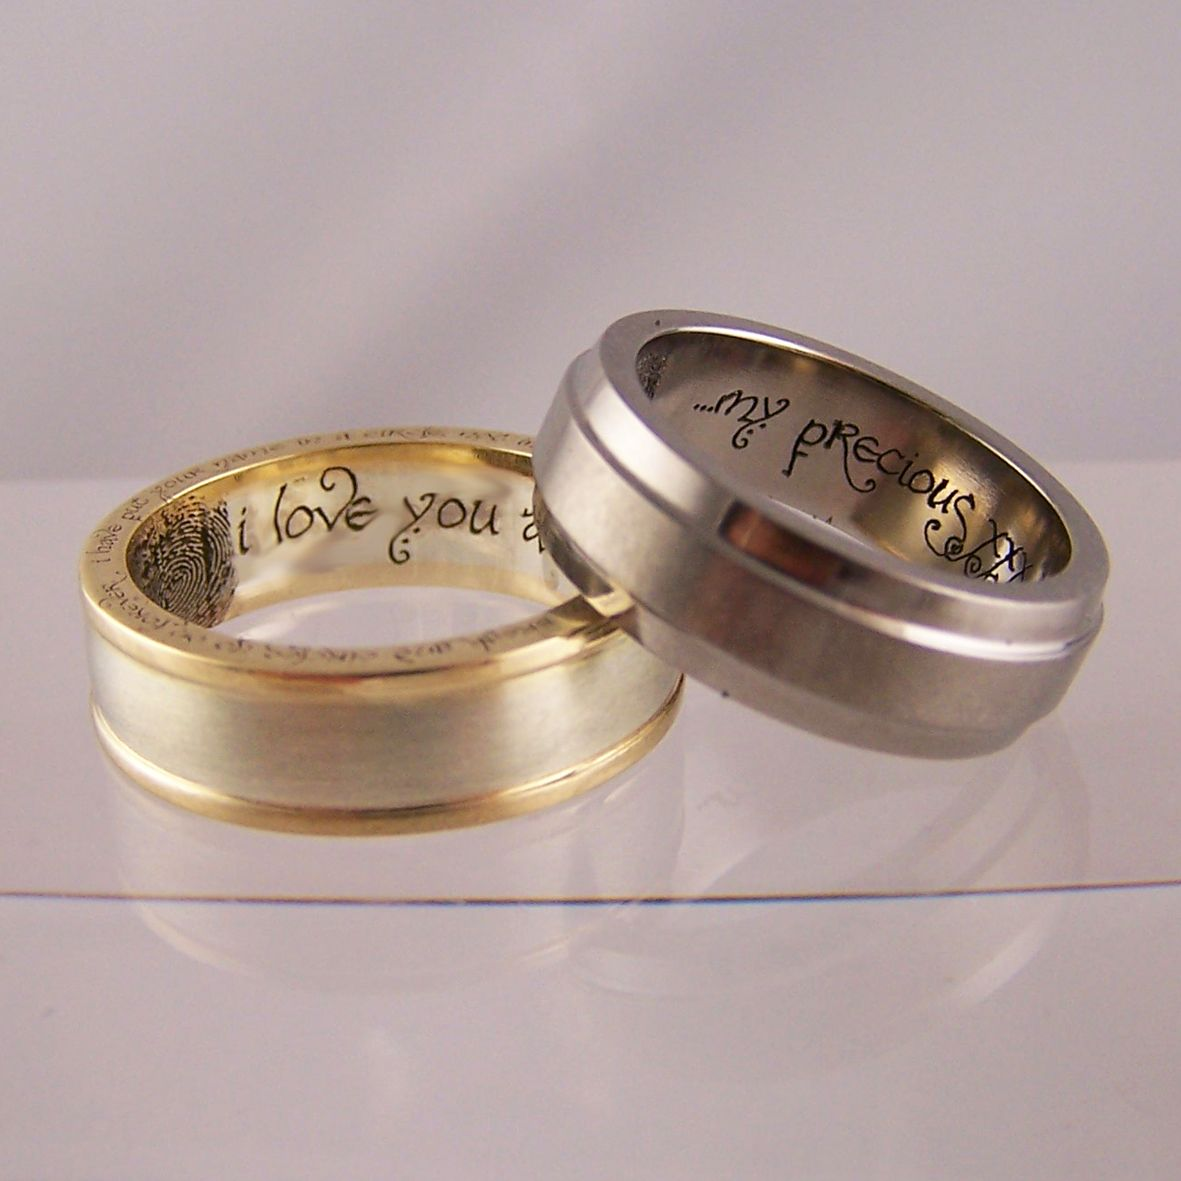 Lord Of The Rings Inspired Wedding Rings With Bilbo Baggins Handwriting  Font U0026 Couples